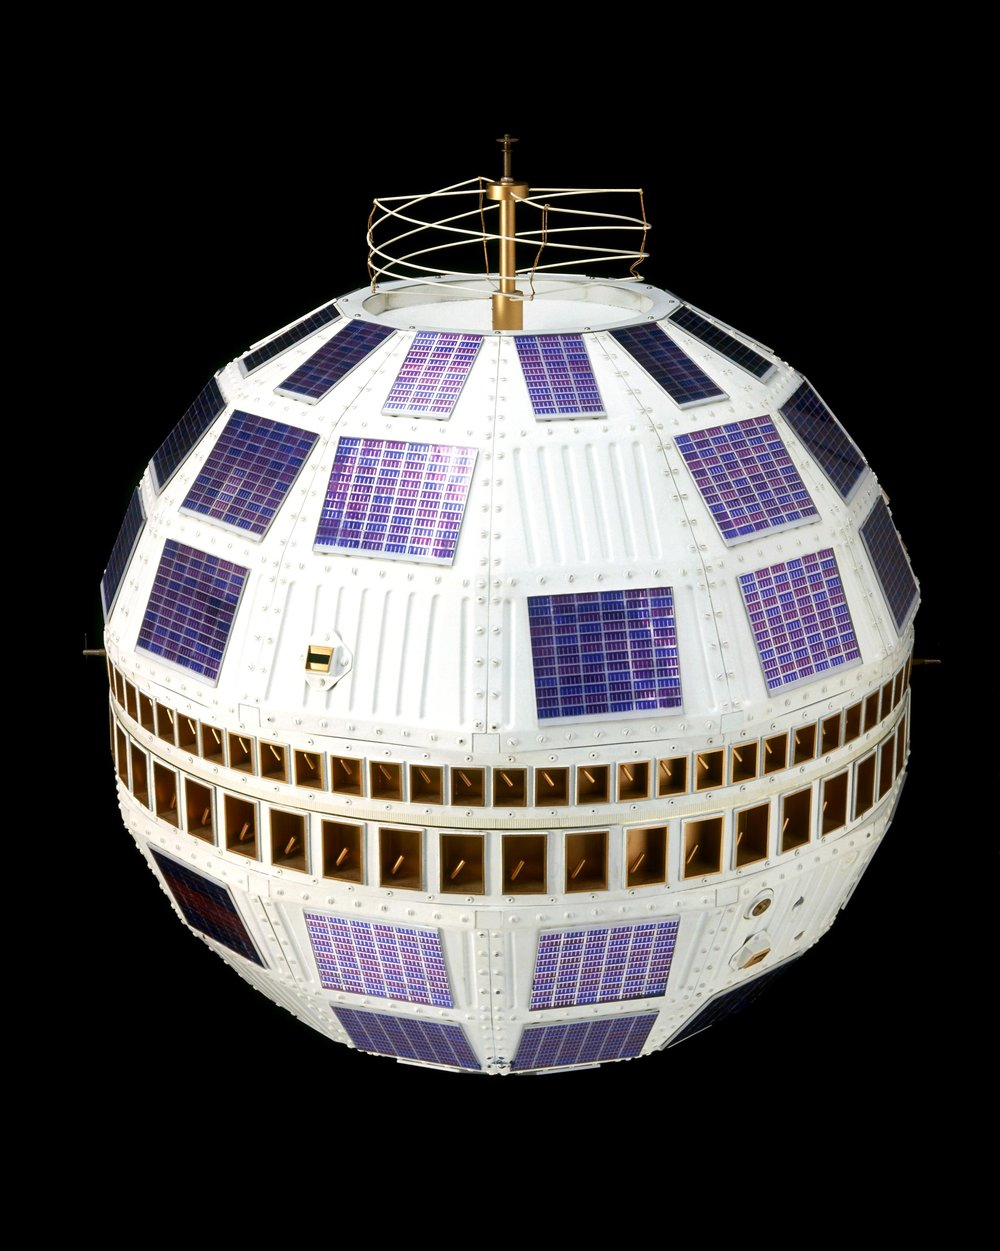 A replica of the Telstar I communications satellite (1962)